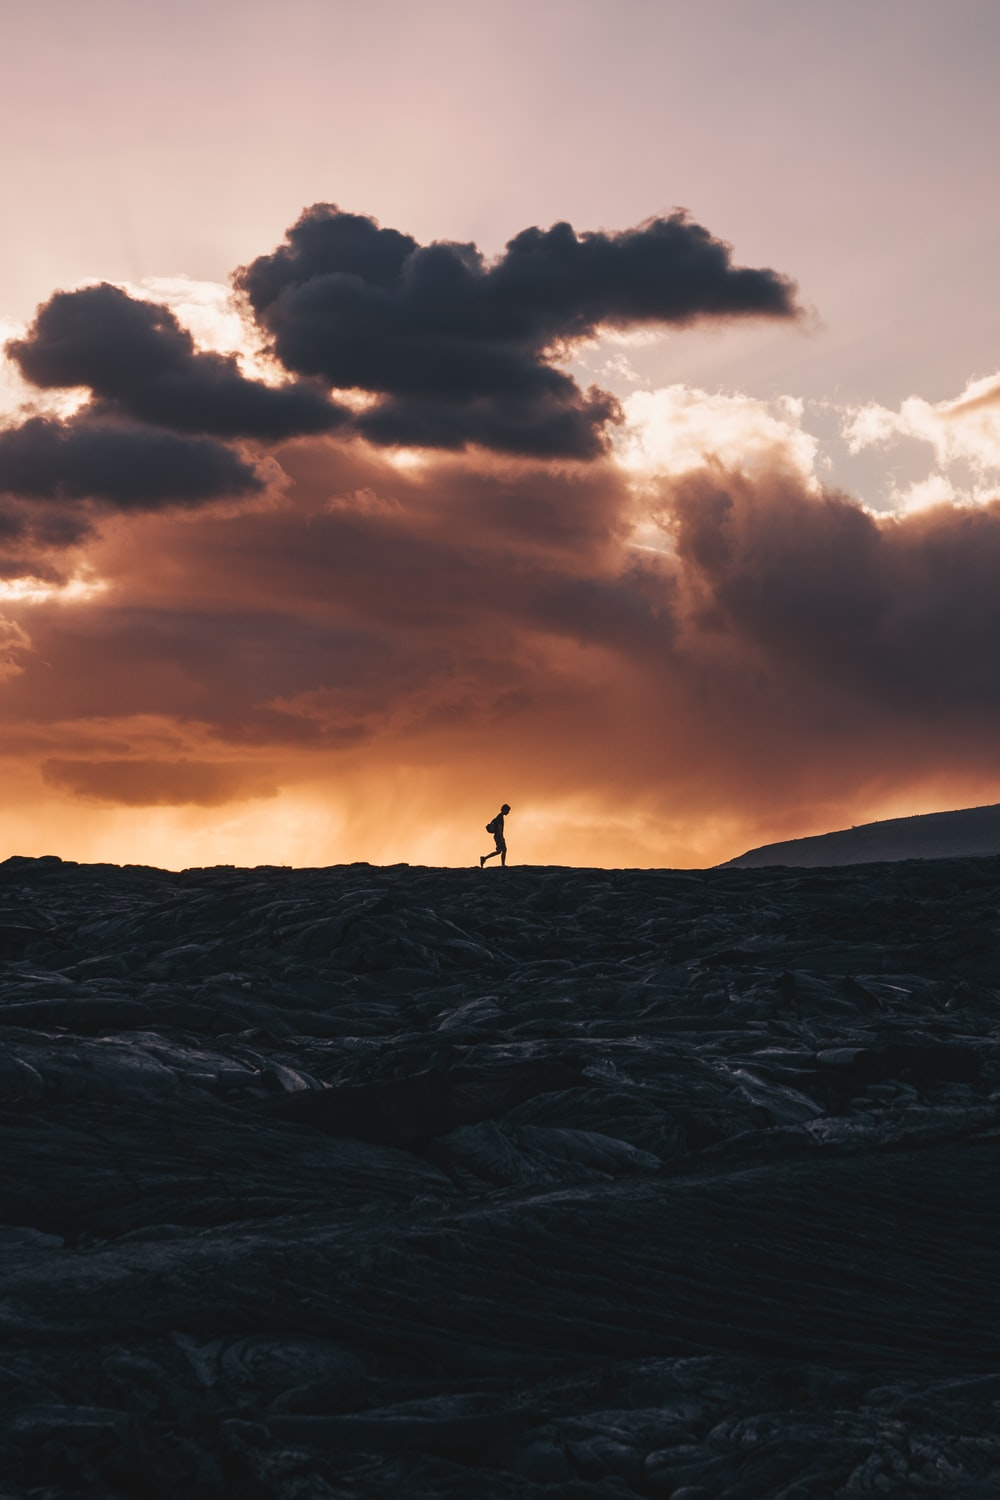 landscape photo of person walking on horizon